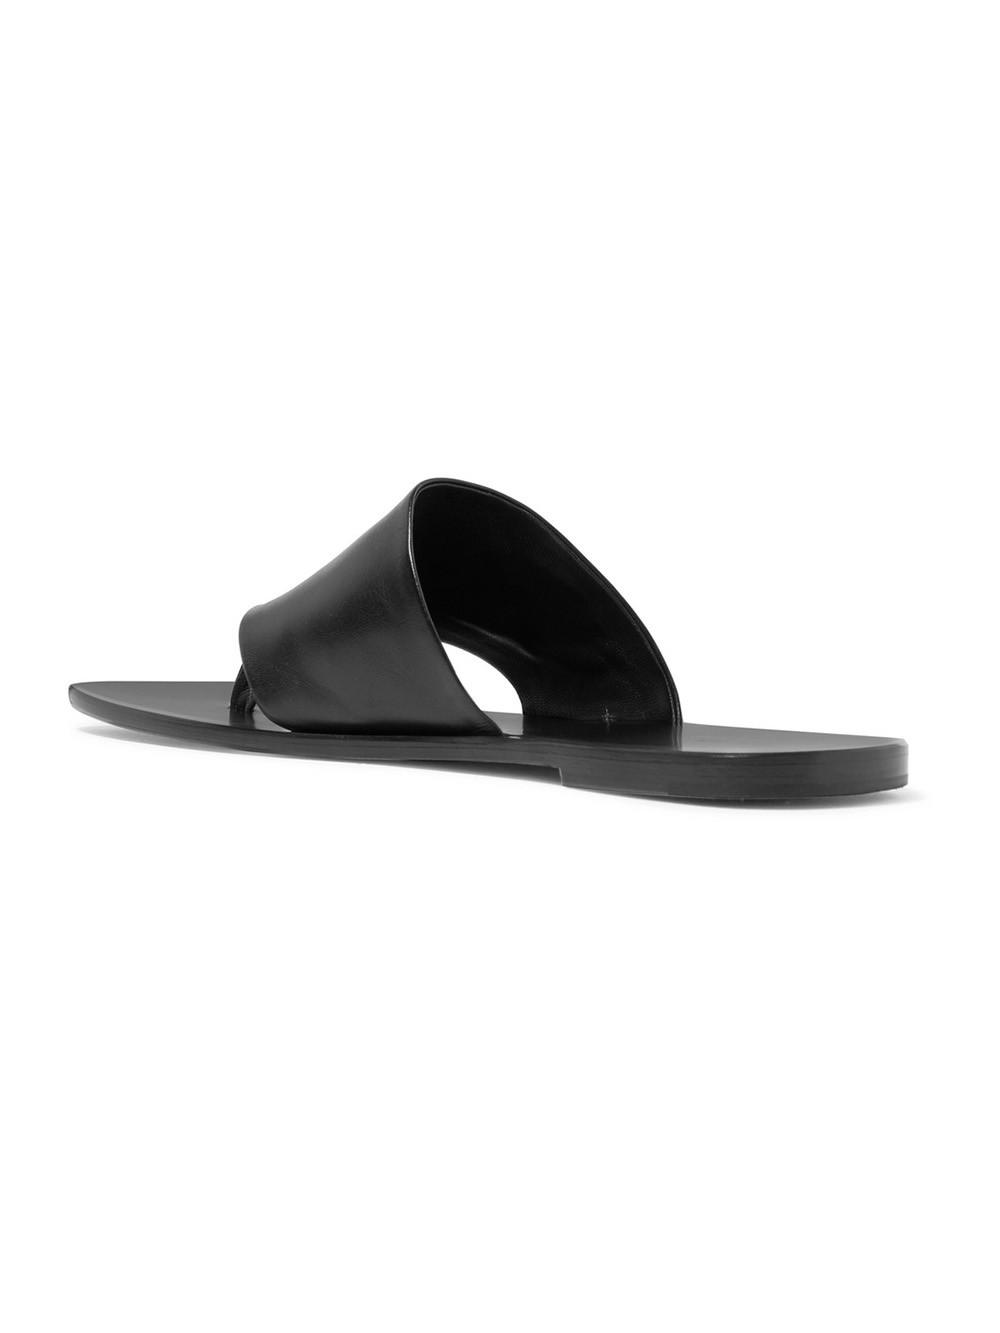 f7069abb468f Lyst - The Row Flip Flop Leather Sandals in Black